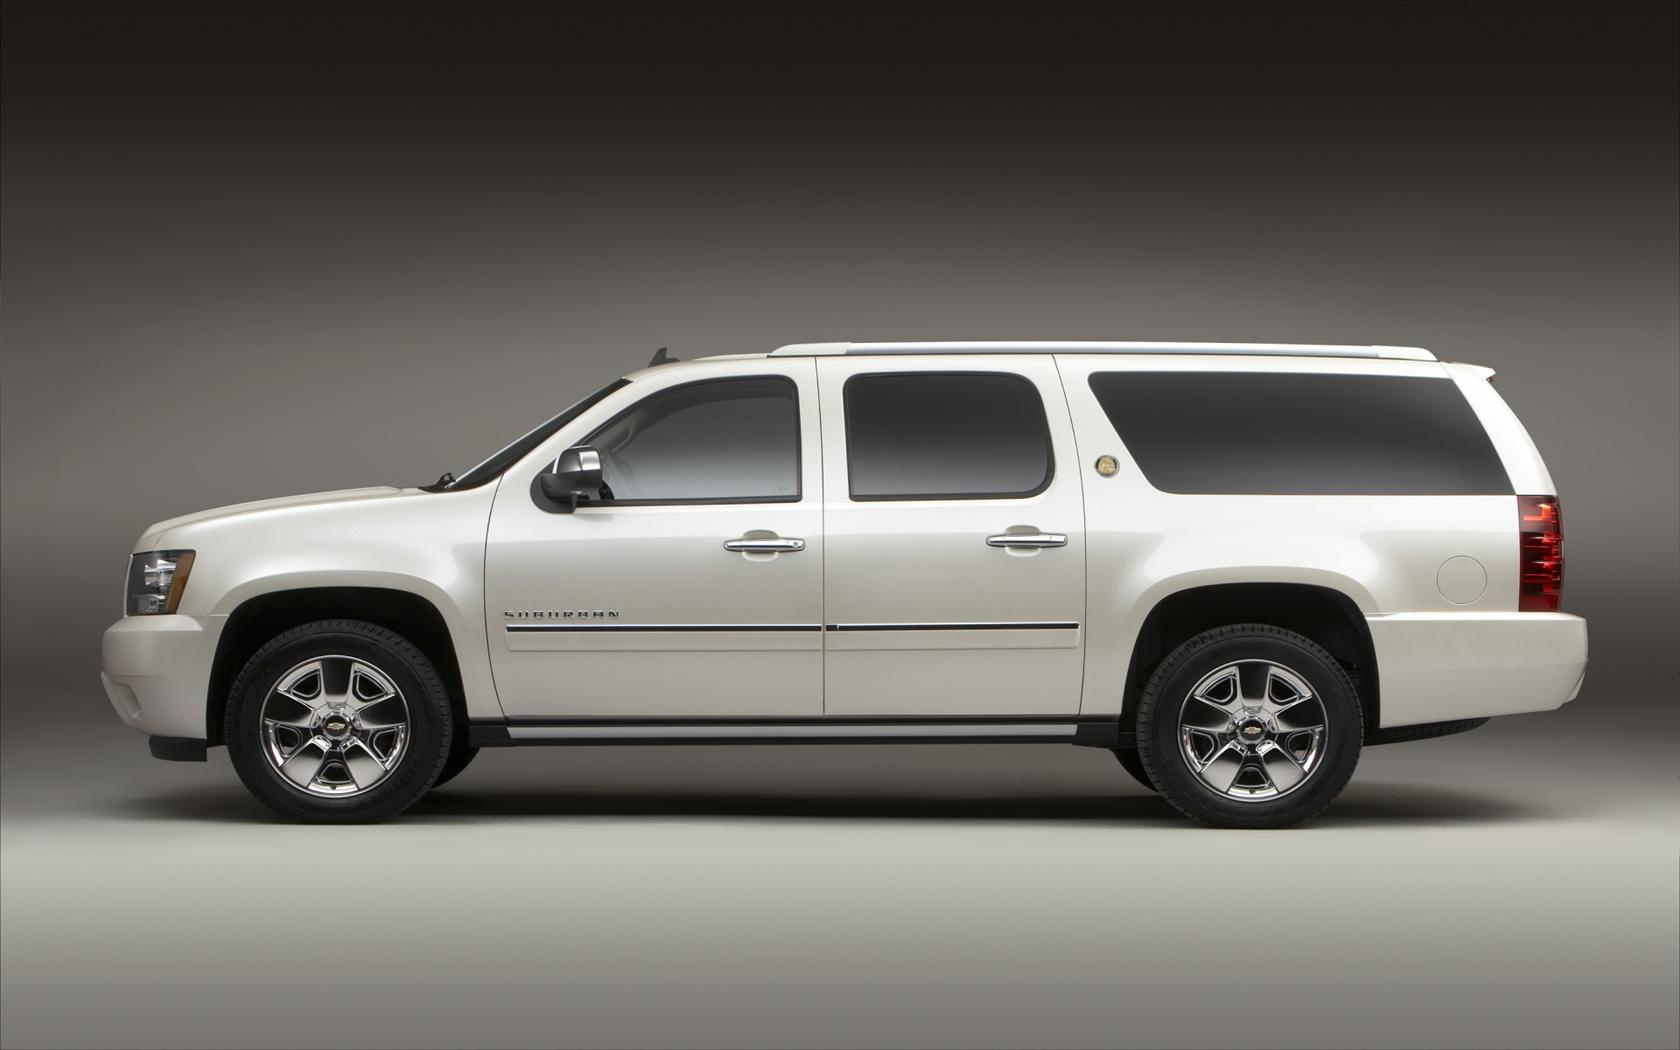 2010 Chevrolet Suburban 75th Anniversary Diamond Edition Image